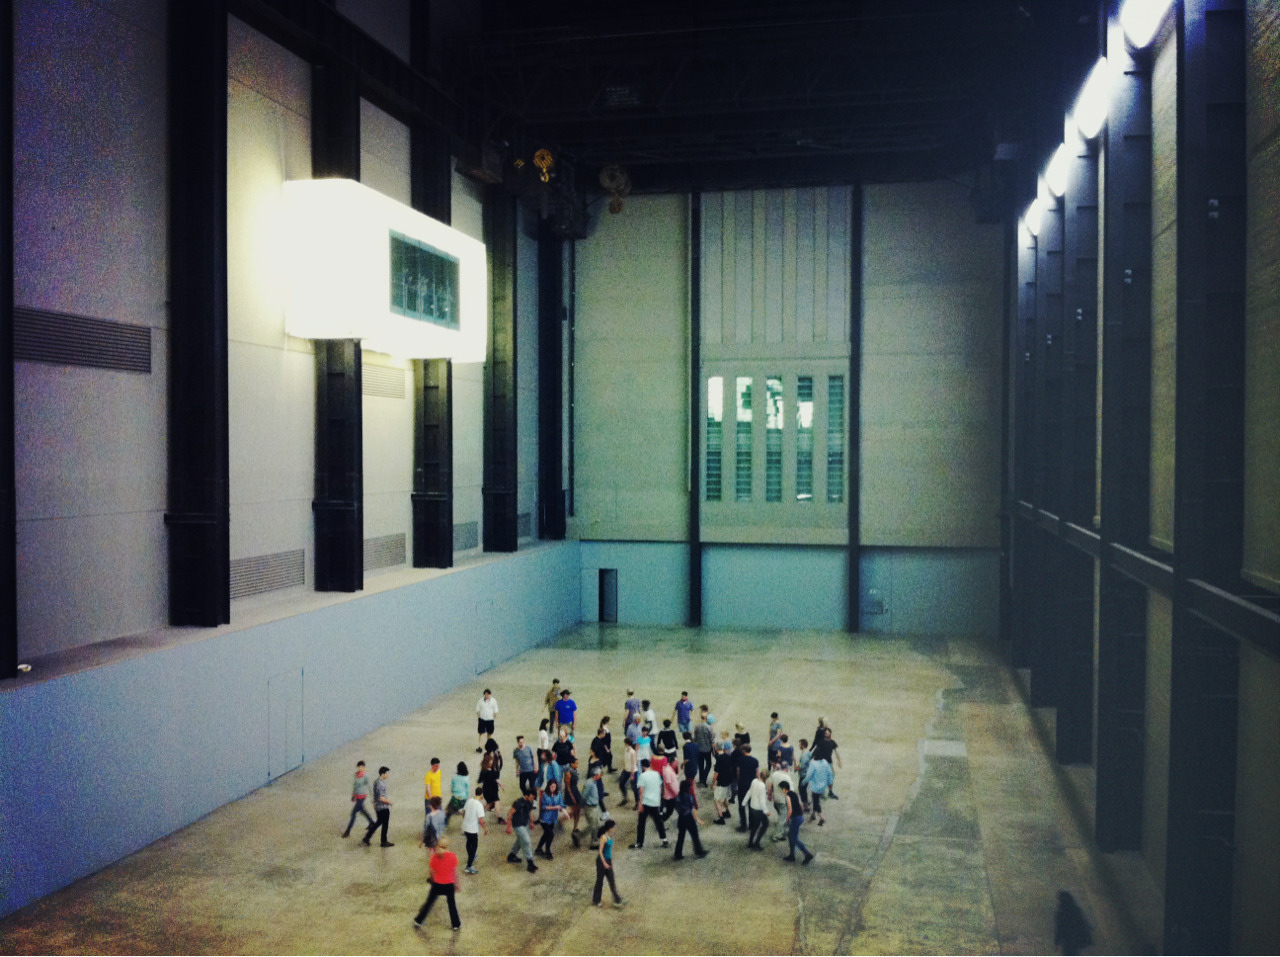 Performance in the Turbine Hall at Tate Modern.